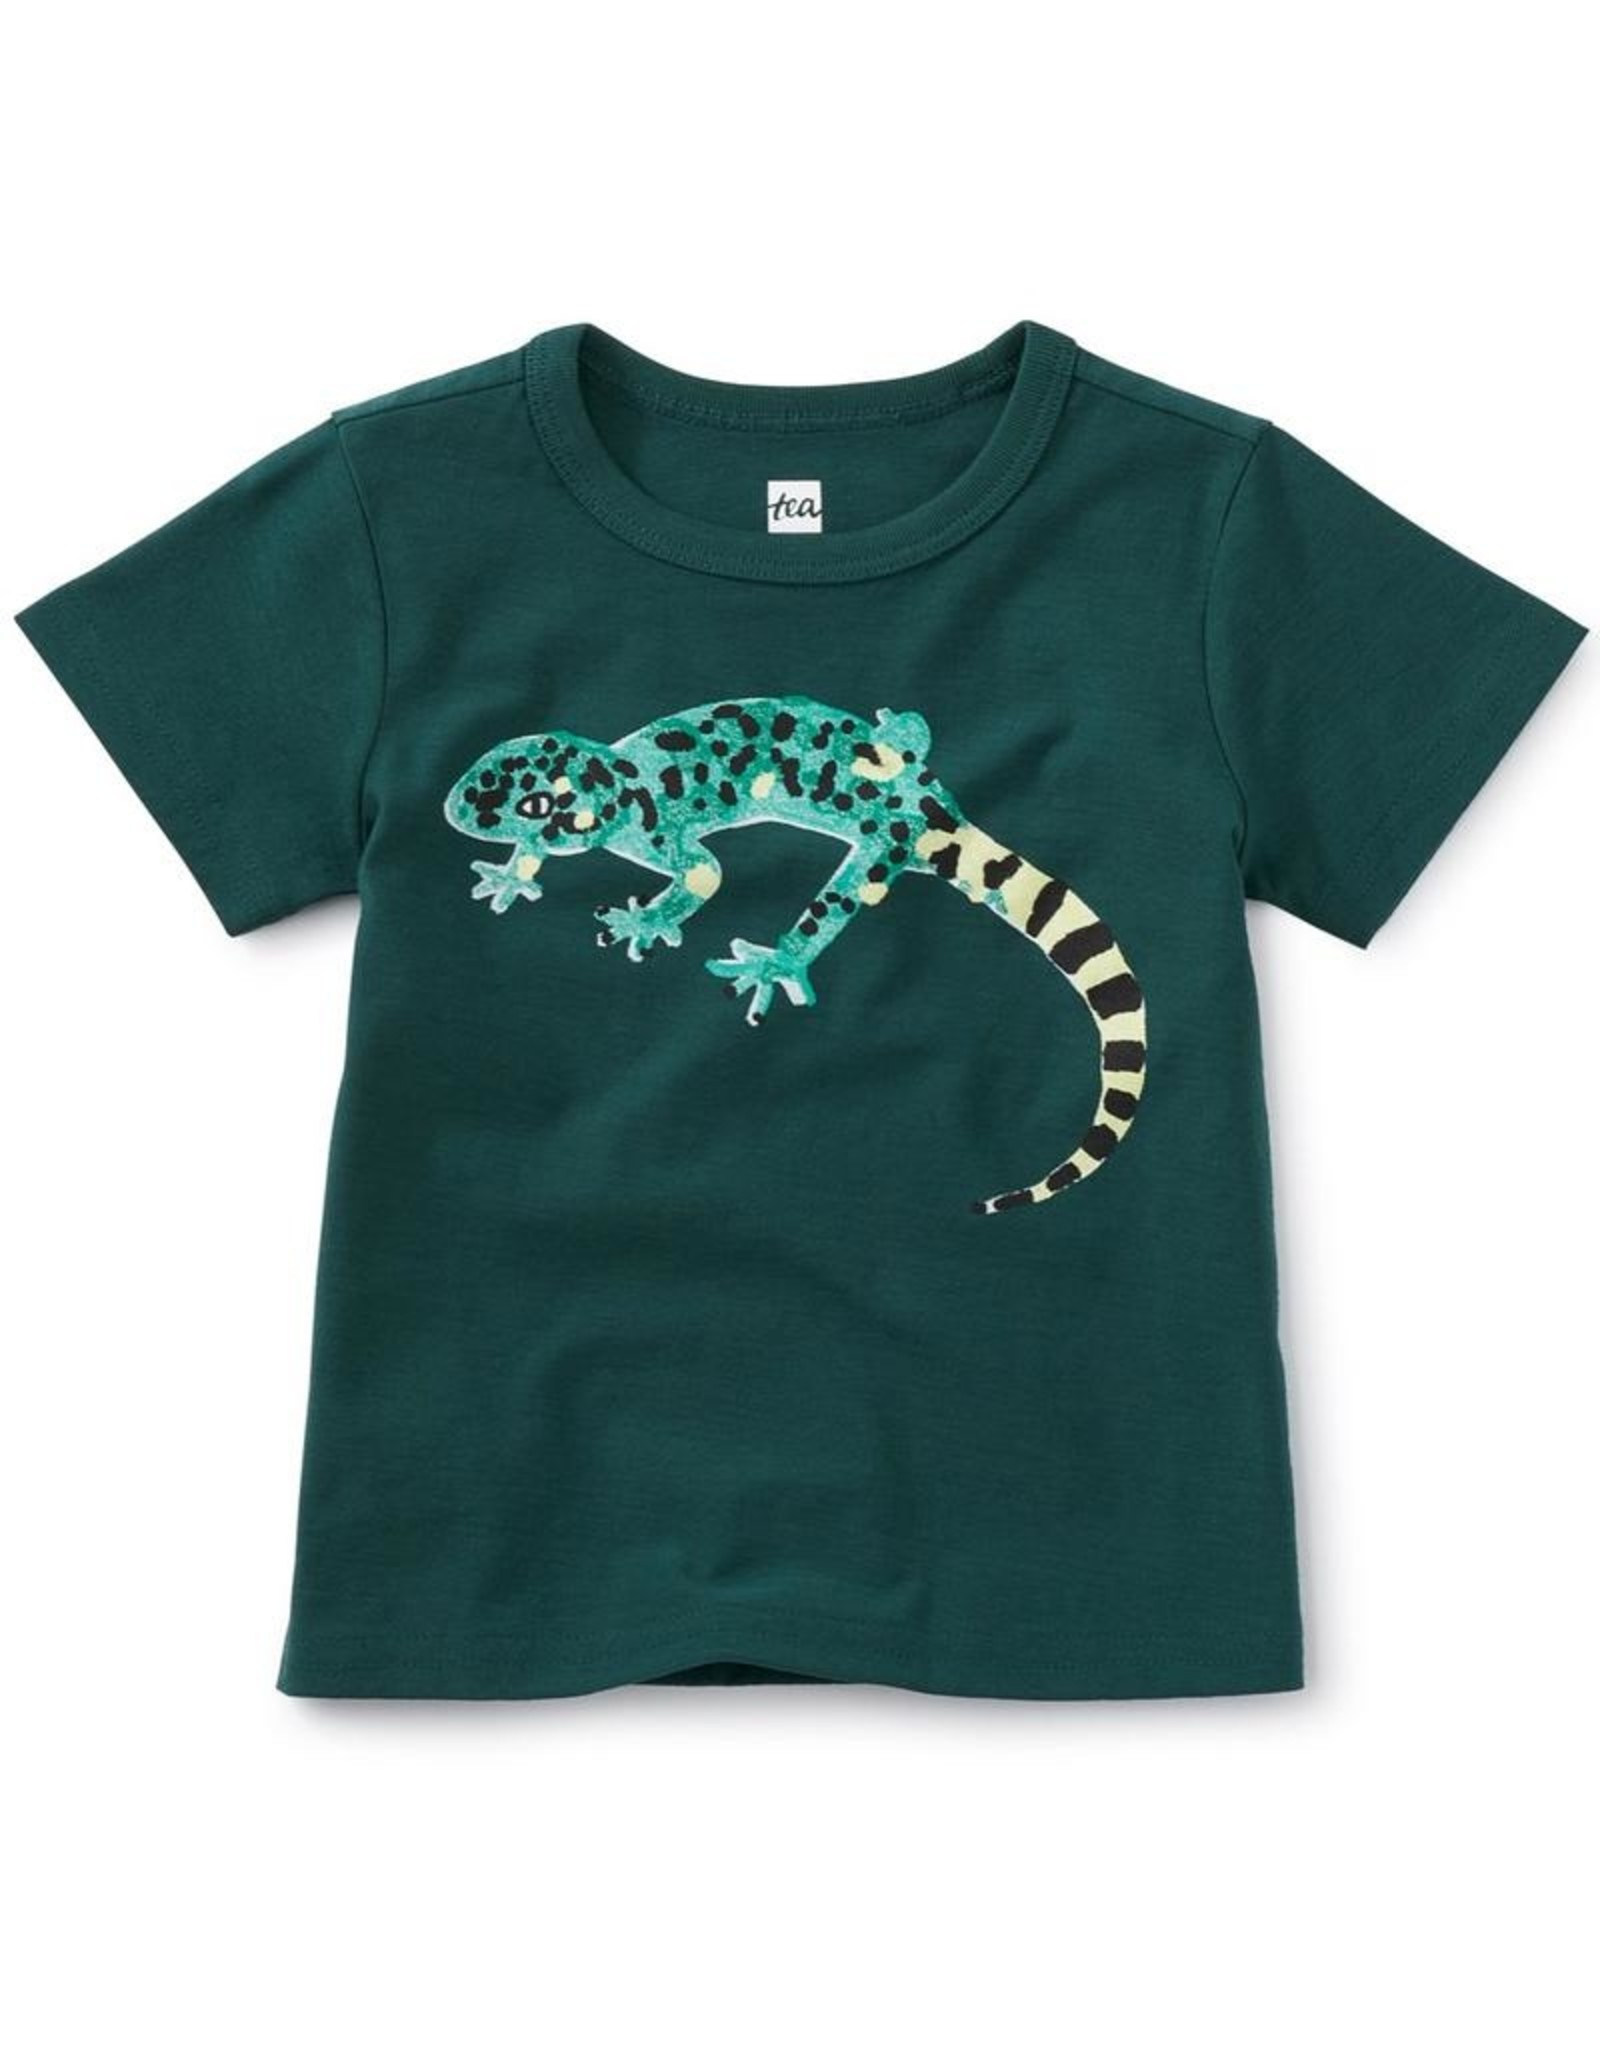 Tea Collection Lounging Lizard Baby Graphic Tee